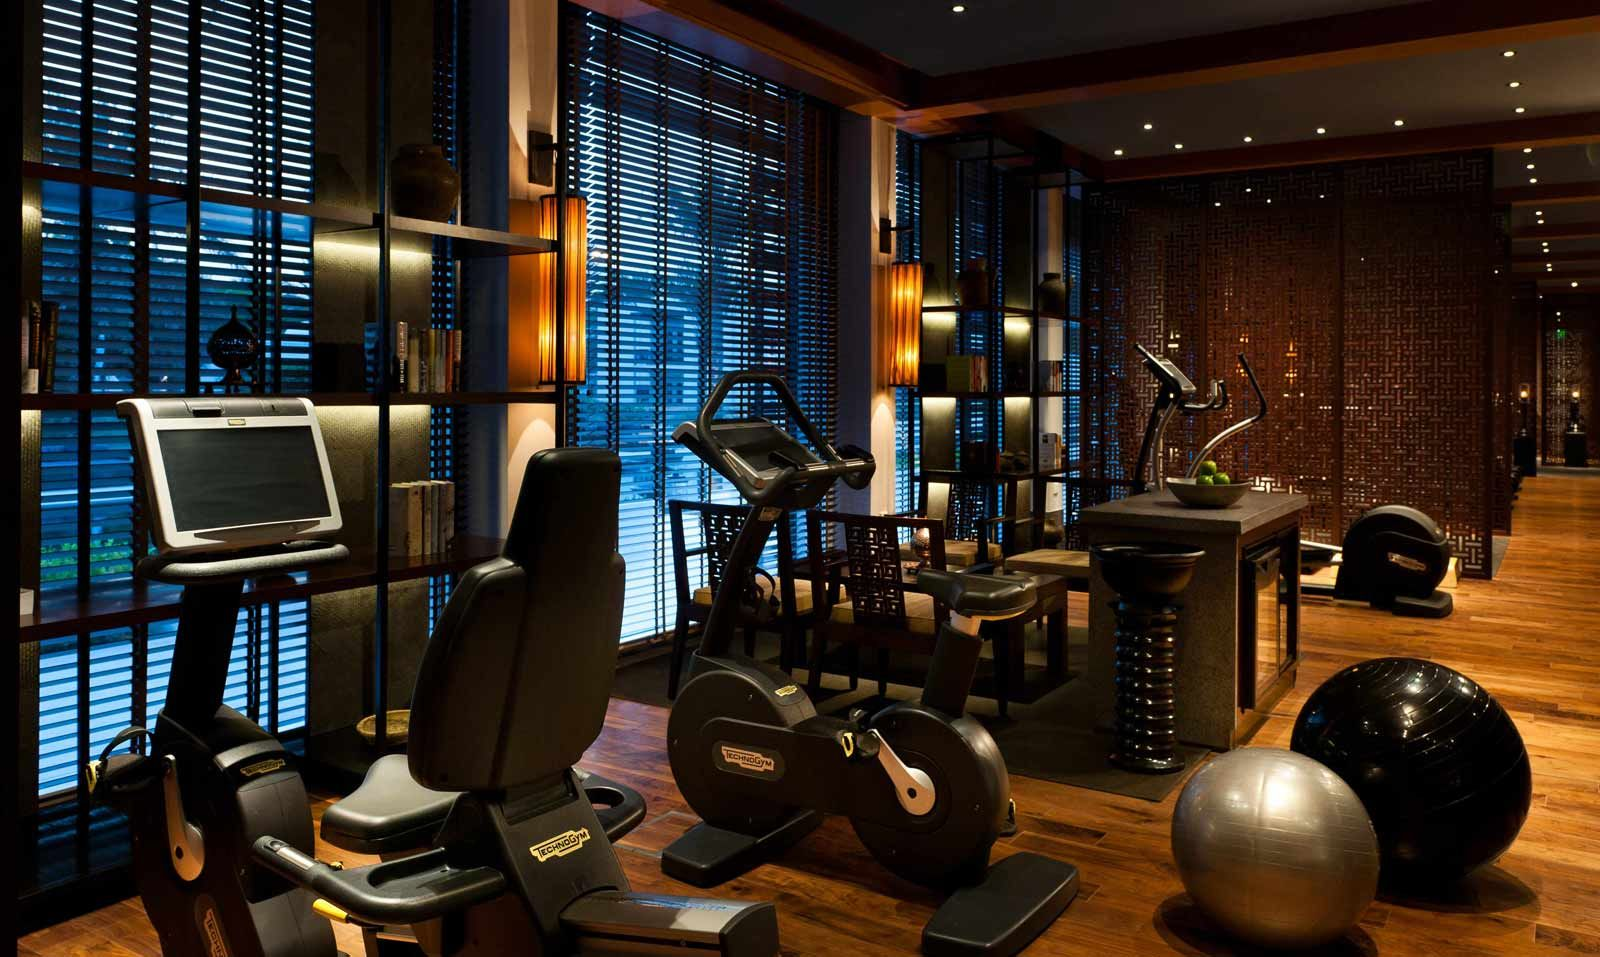 Luxury Hotel In Muscat Oman The Chedi Muscat From Ghm Luxury Gym The Chedi Muscat Gym